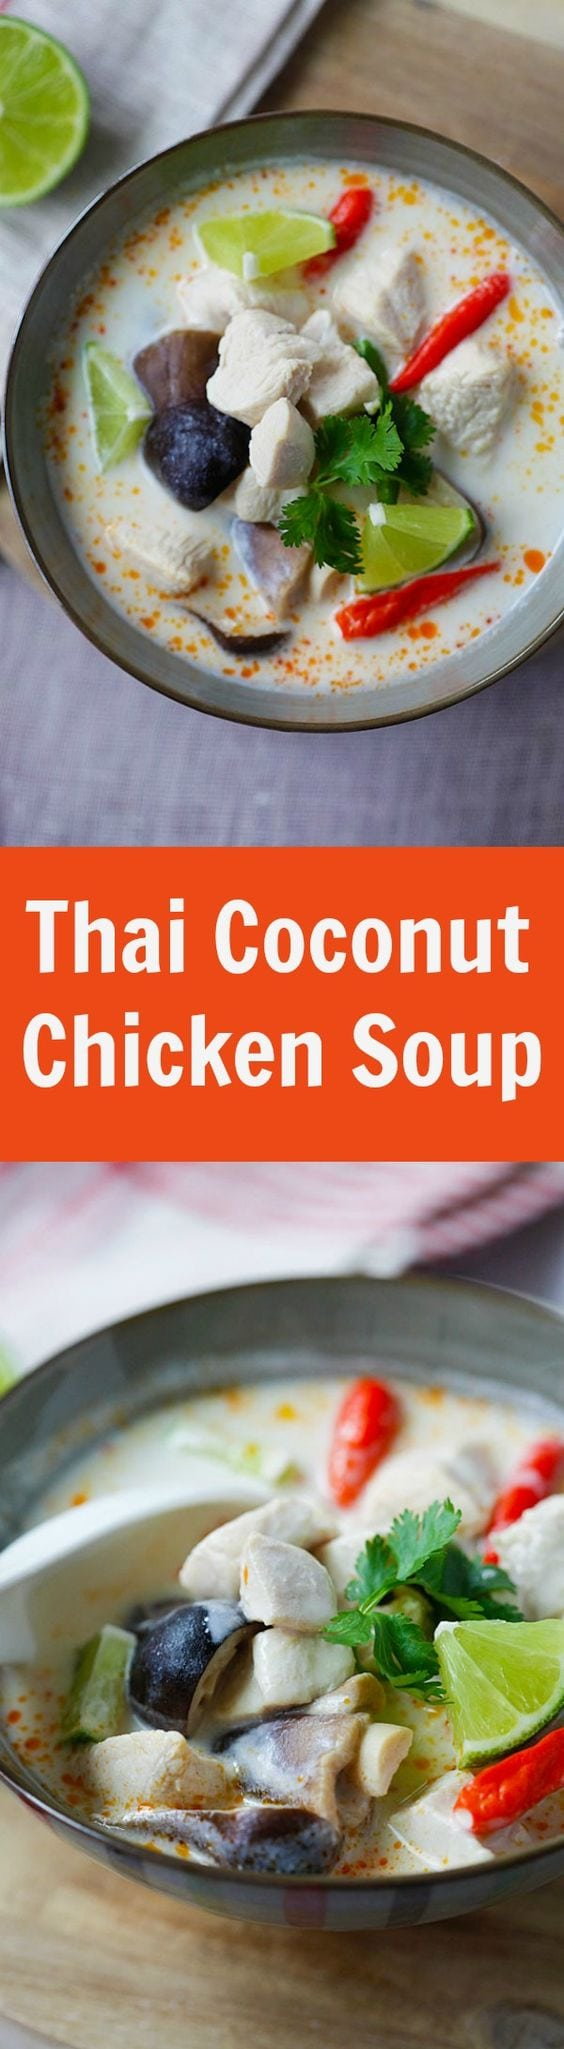 ... Kha Gai hai – BEST and EASIEST recipe for Thai coconut chicken